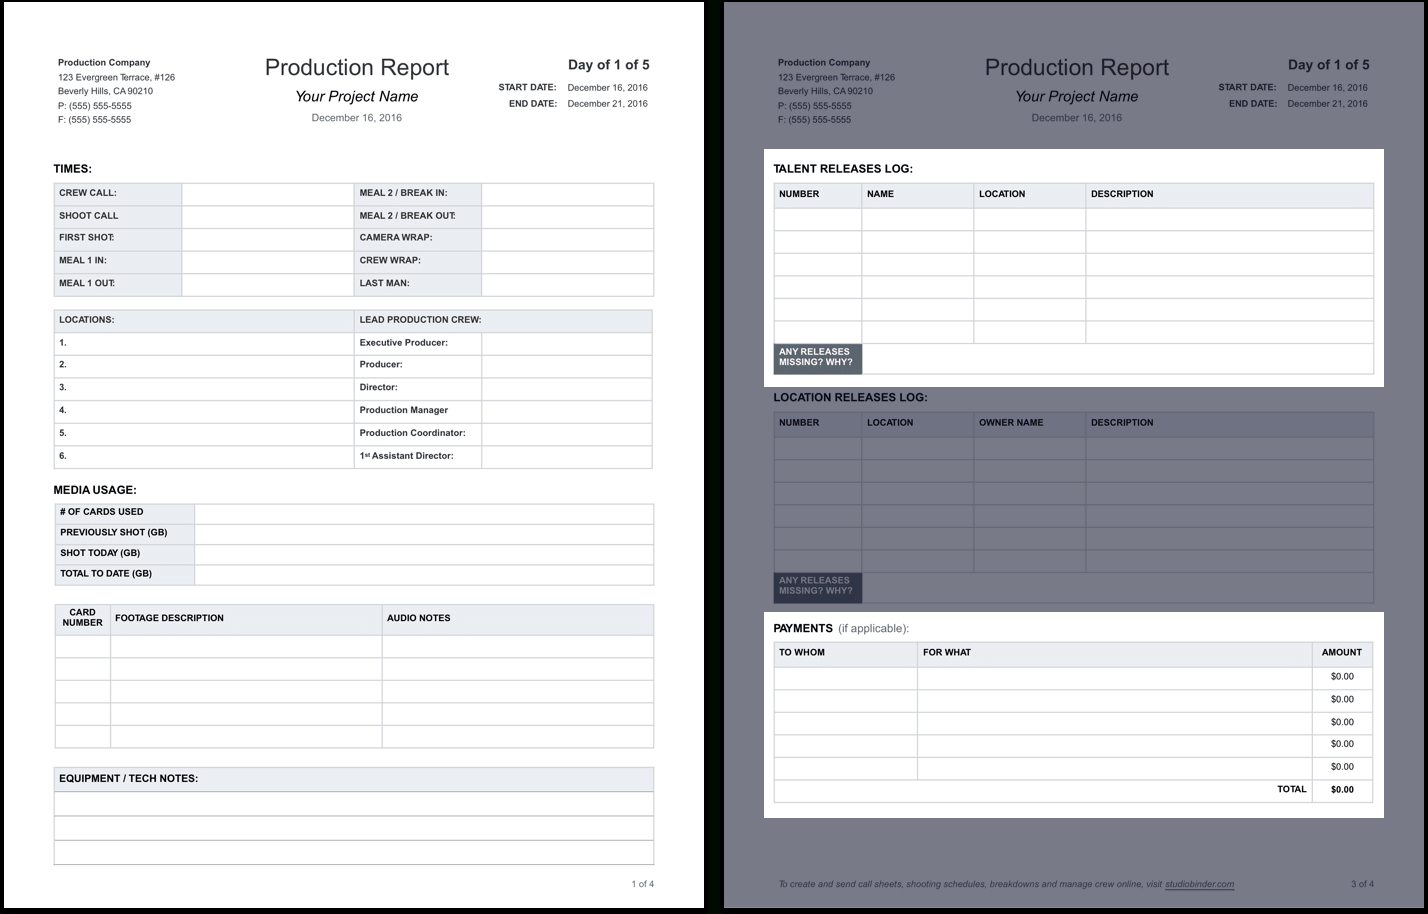 Pipe Tally Spreadsheet For The Daily Production Report